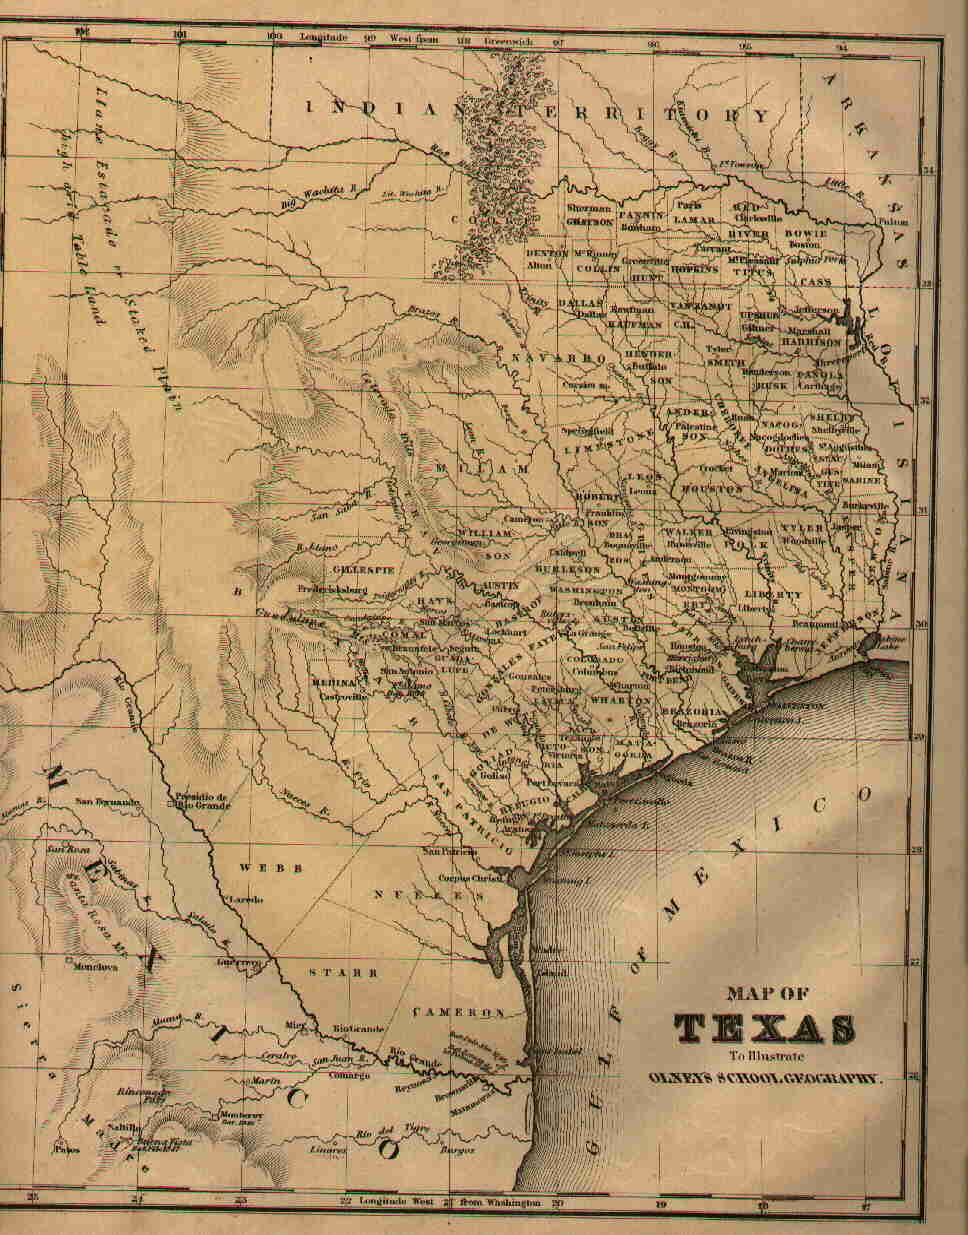 Map Of Texas 1836.Bandera County Texas Maps